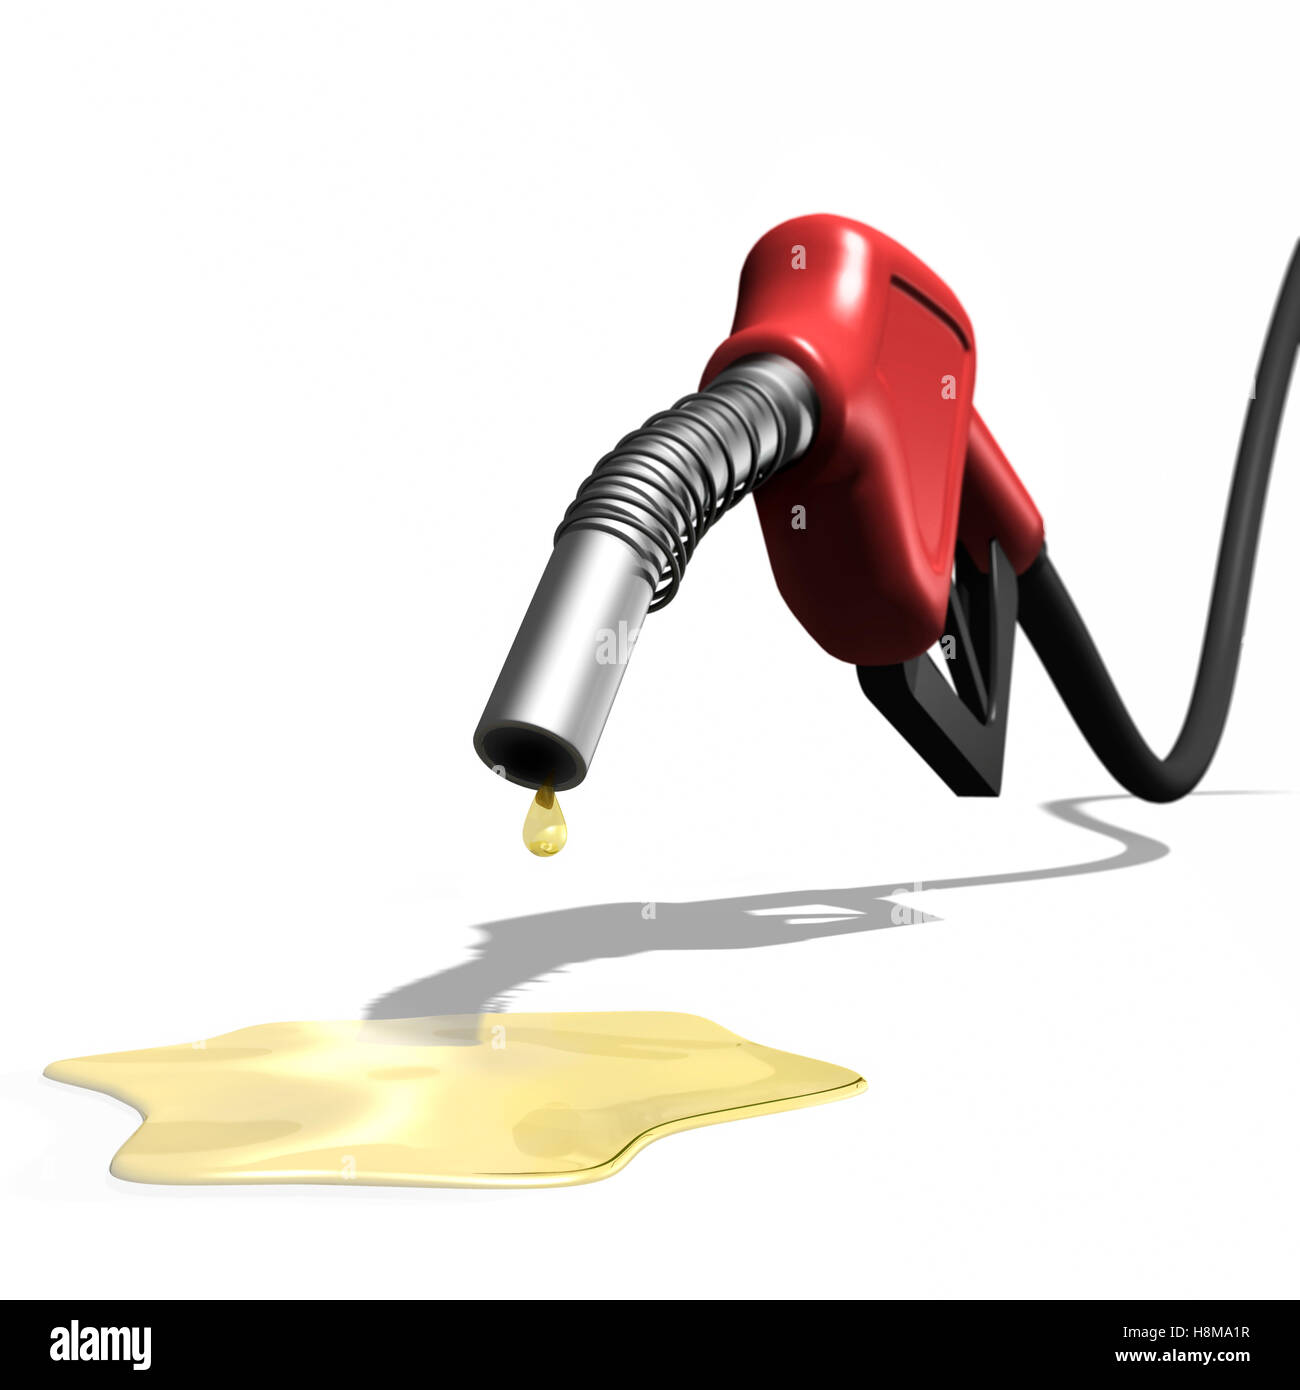 Last drops of gasoline coming out of a gas station nozzle, illustration - Stock Image